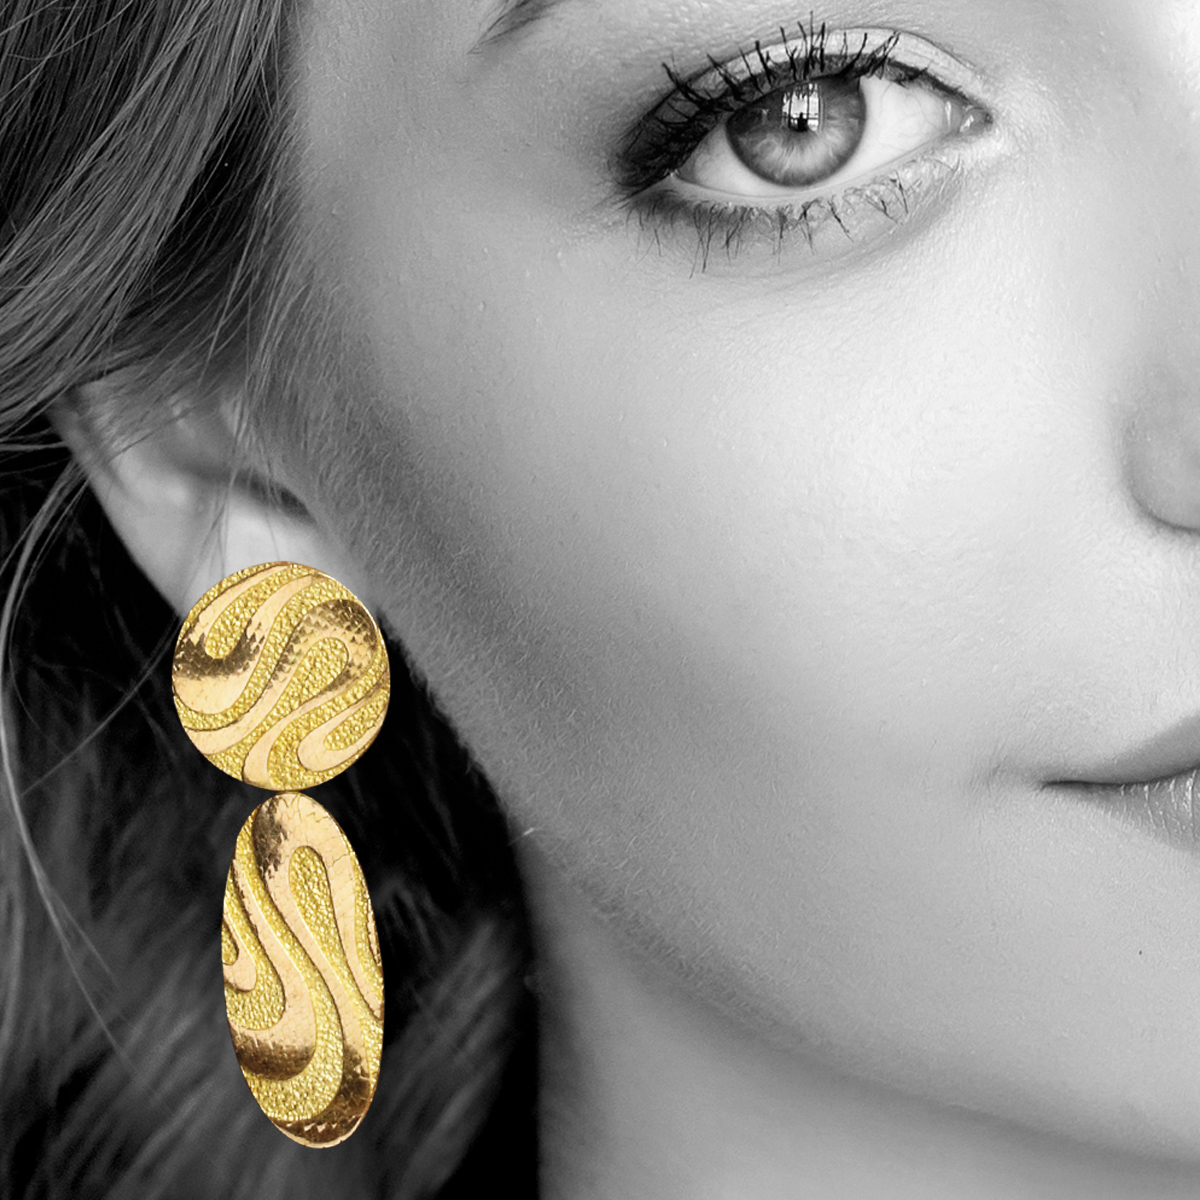 Model wearing gold pendant earrings by George L'Enfant